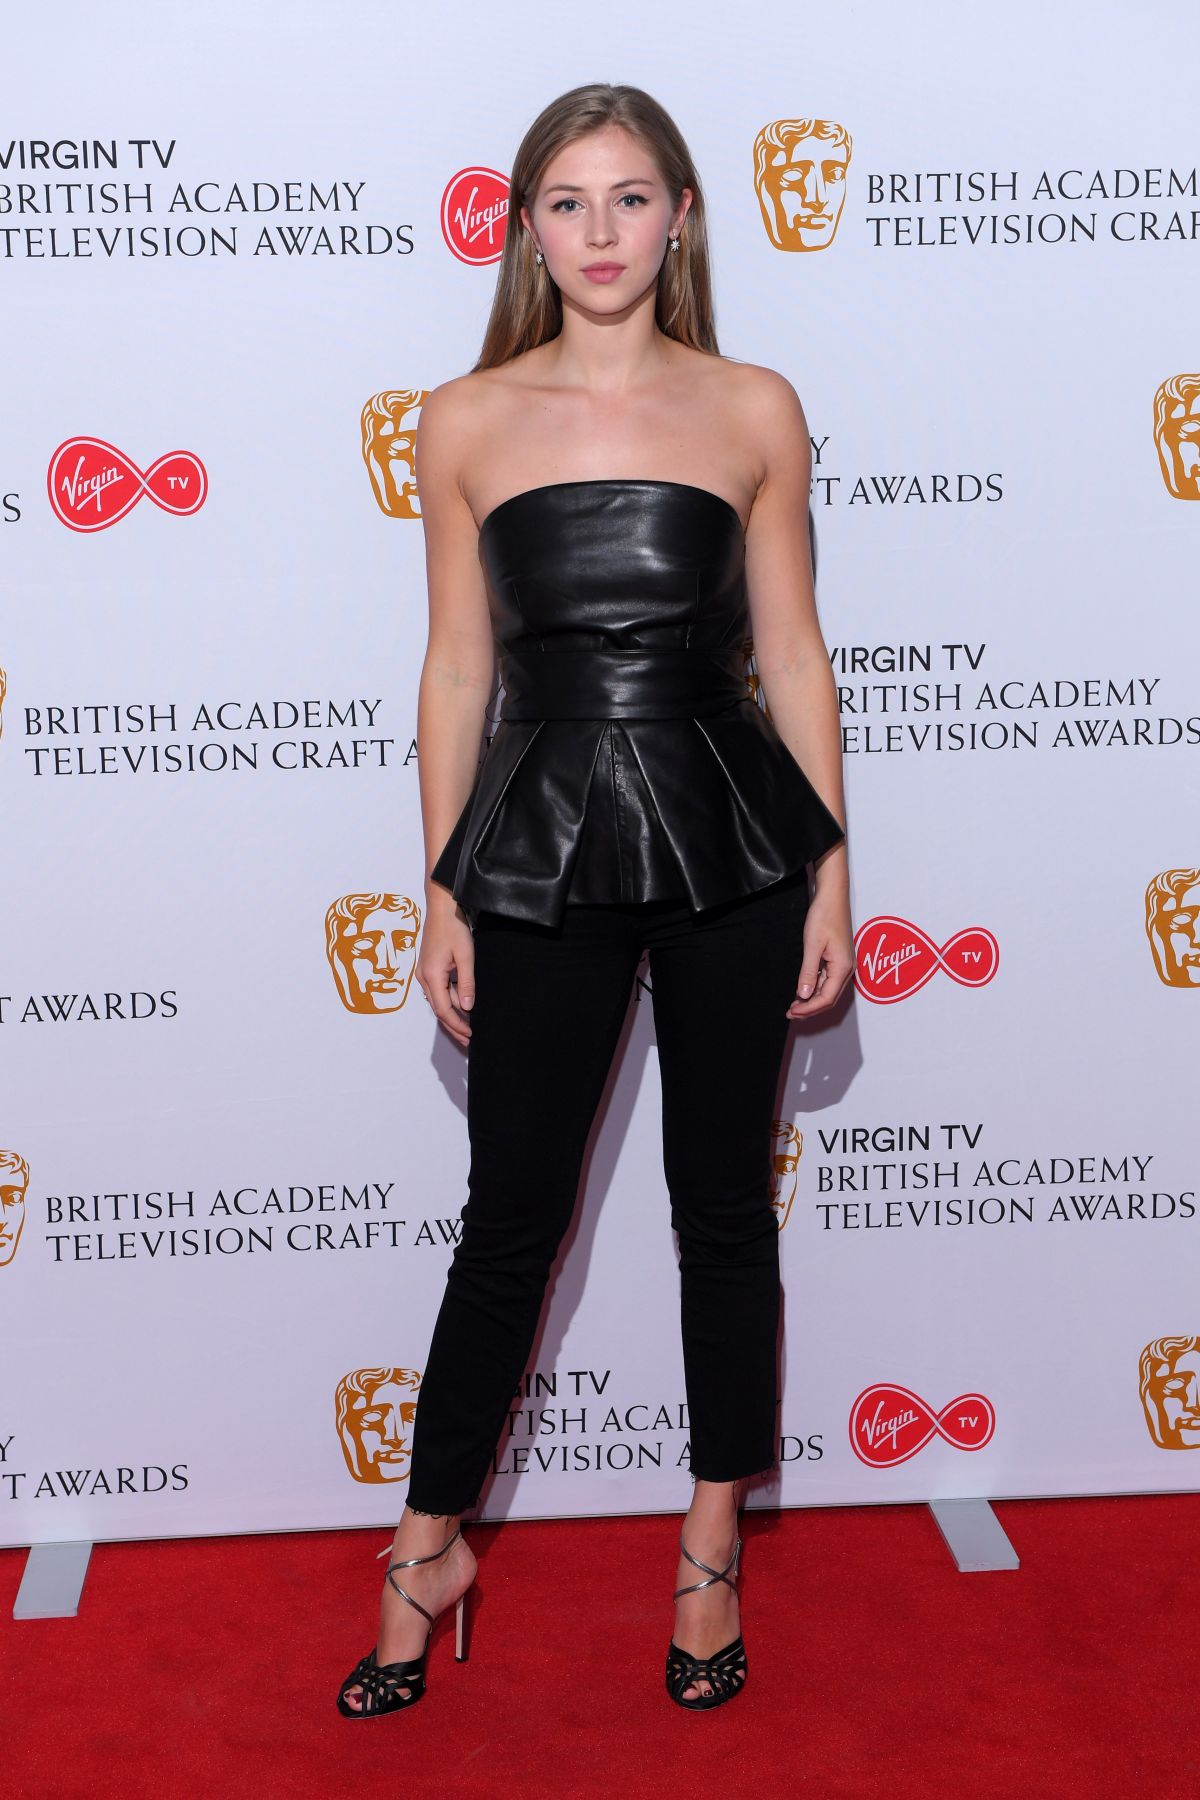 HERMIONE CORFIELD at British Academy Television and Craft Awards Nominees Party in London 04/20/2017   hermione-corfield-at-british-academy-television-and-craft-awards-nominees-party-in-london-04-20-2017_8